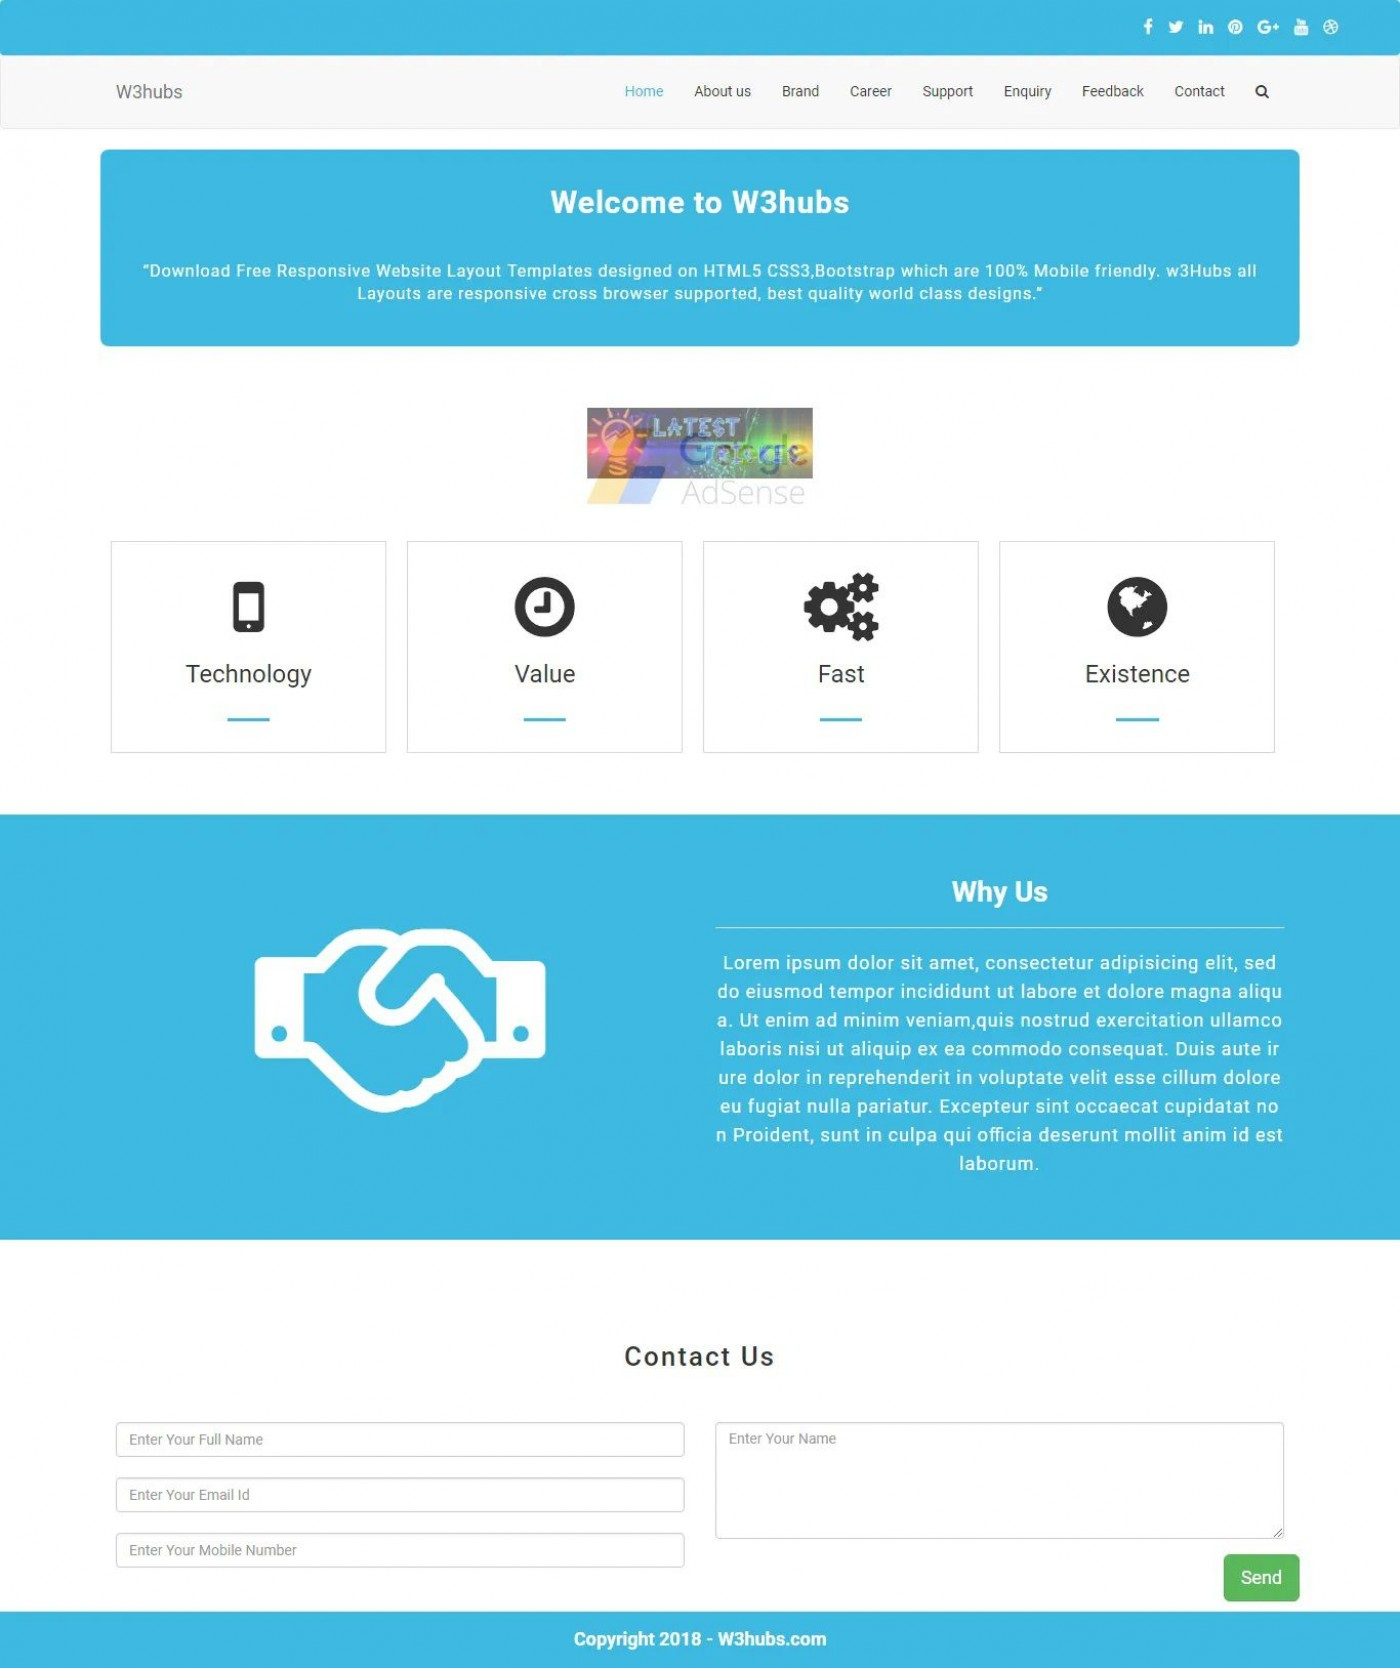 007 Unbelievable Free Php Website Template Photo  With Admin Panel Download Source Code And Database Cm1400